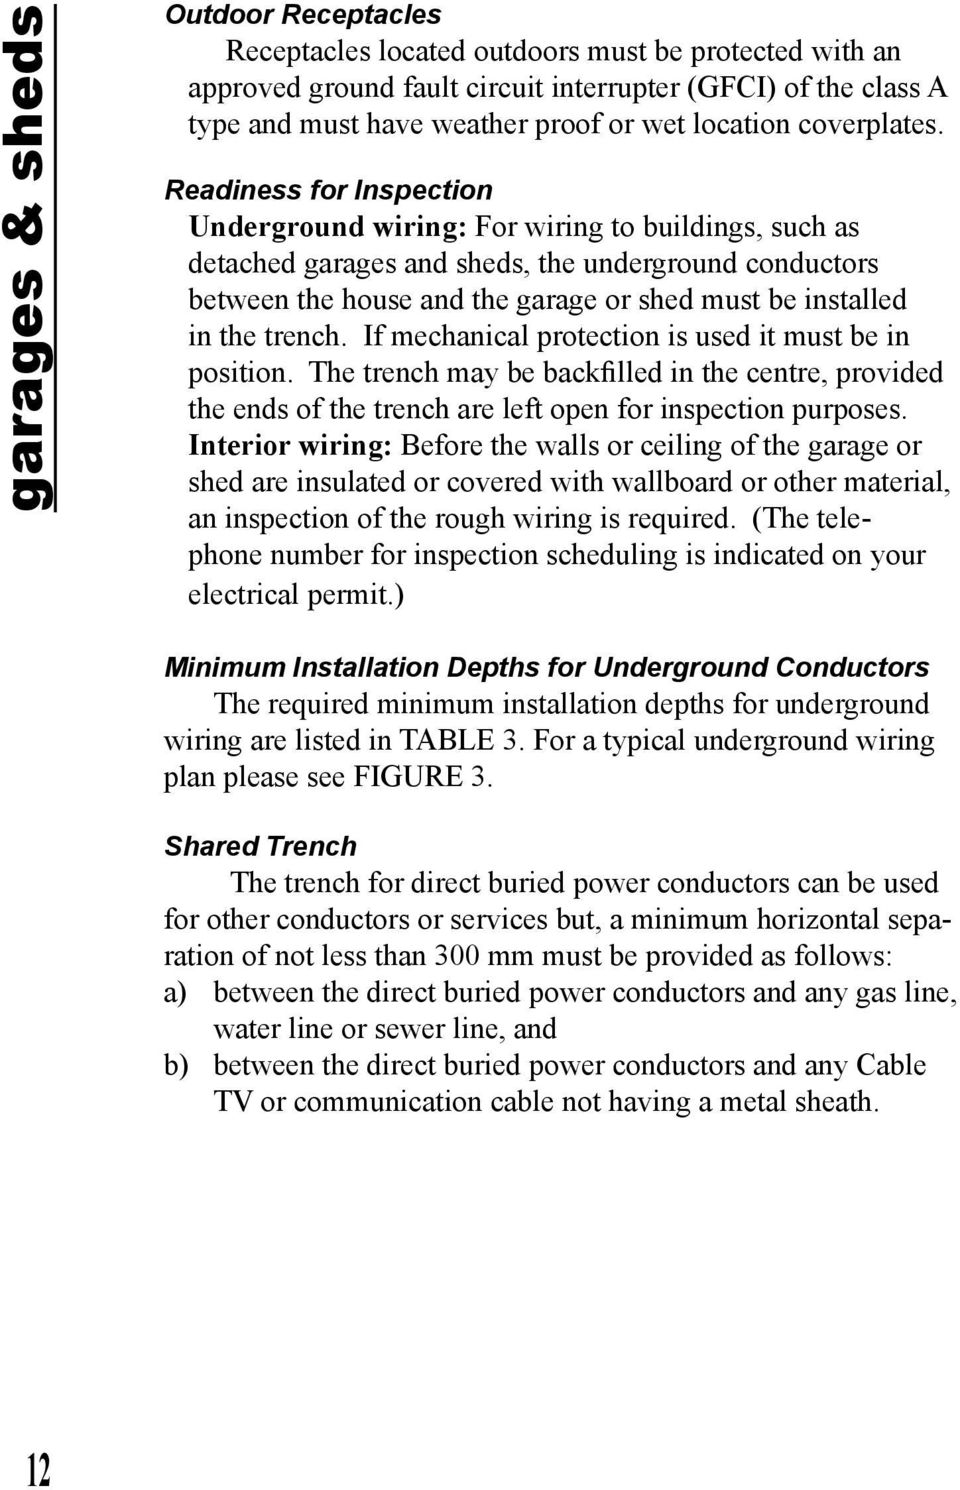 hight resolution of readiness for inspection underground wiring for wiring to buildings such as detached garages and